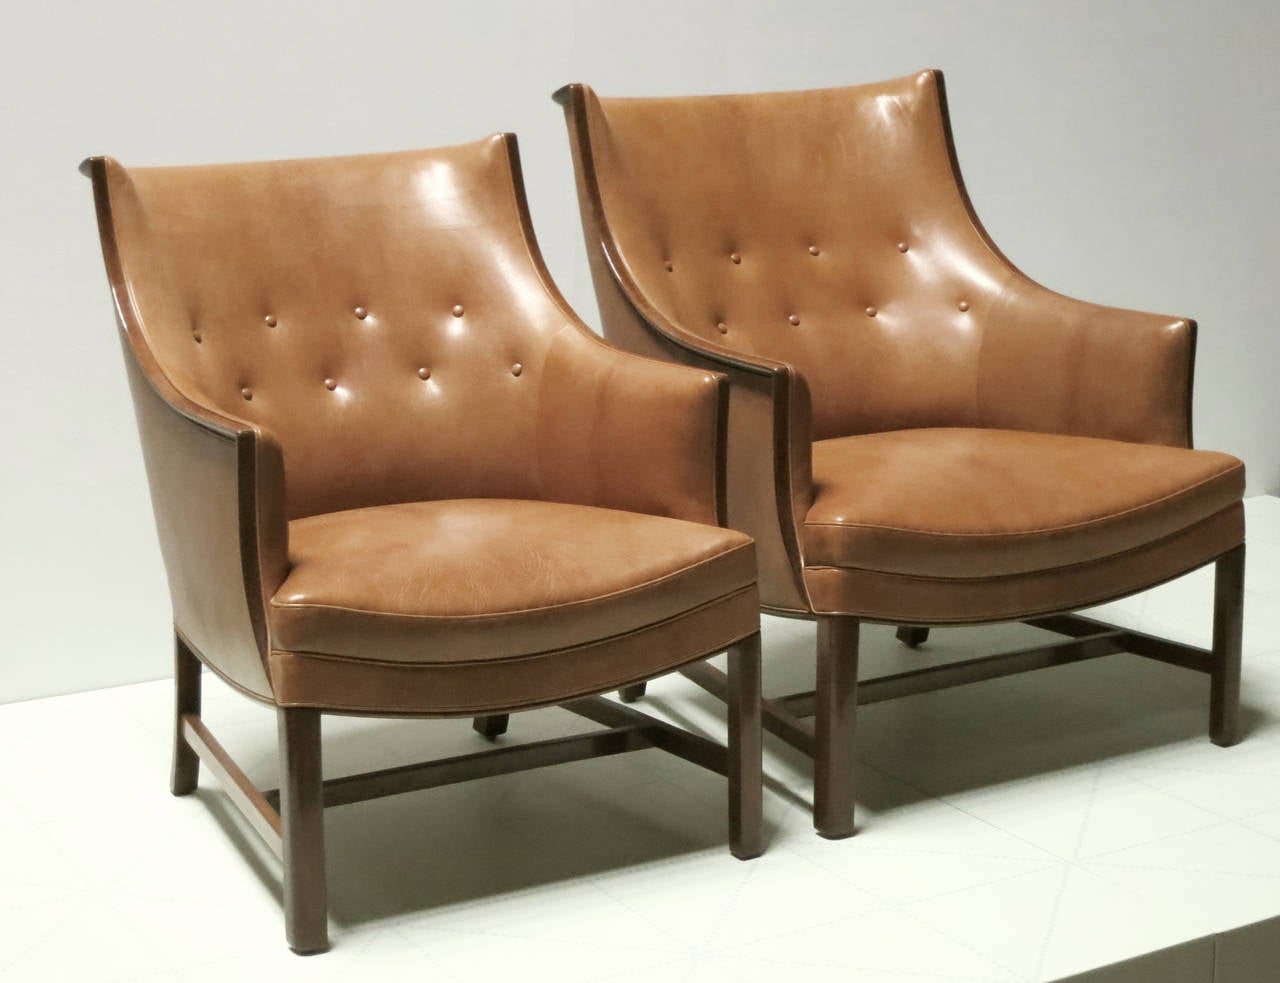 Pair of Refined 1930s Easy Chairs by Frits Henningsen 4